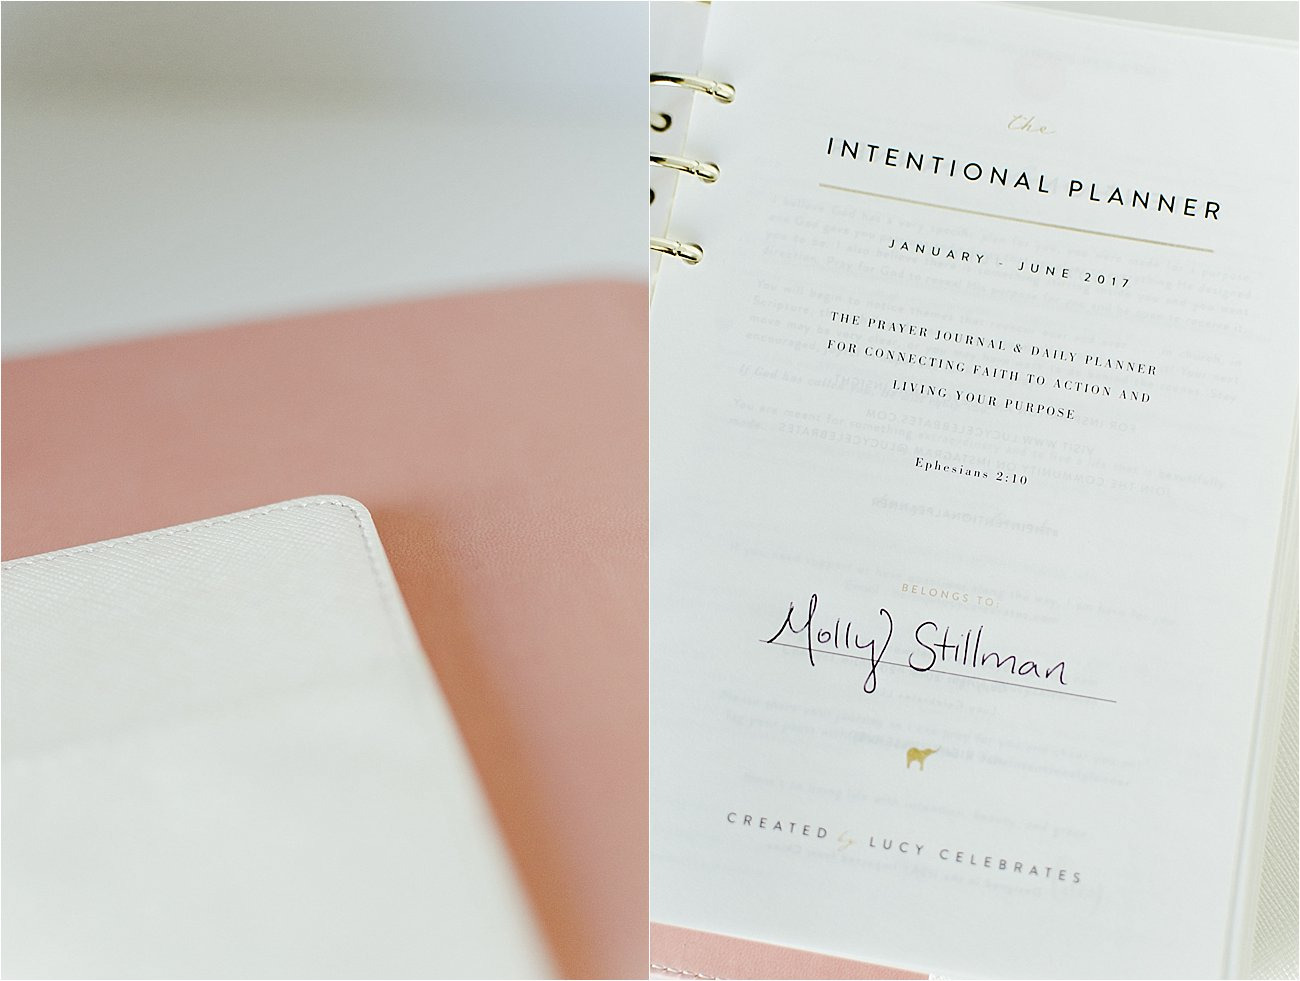 Taking on 2017 with The Intentional Planner   Intentional Planner Review - Christian Planner and Prayer Journal Review (6)